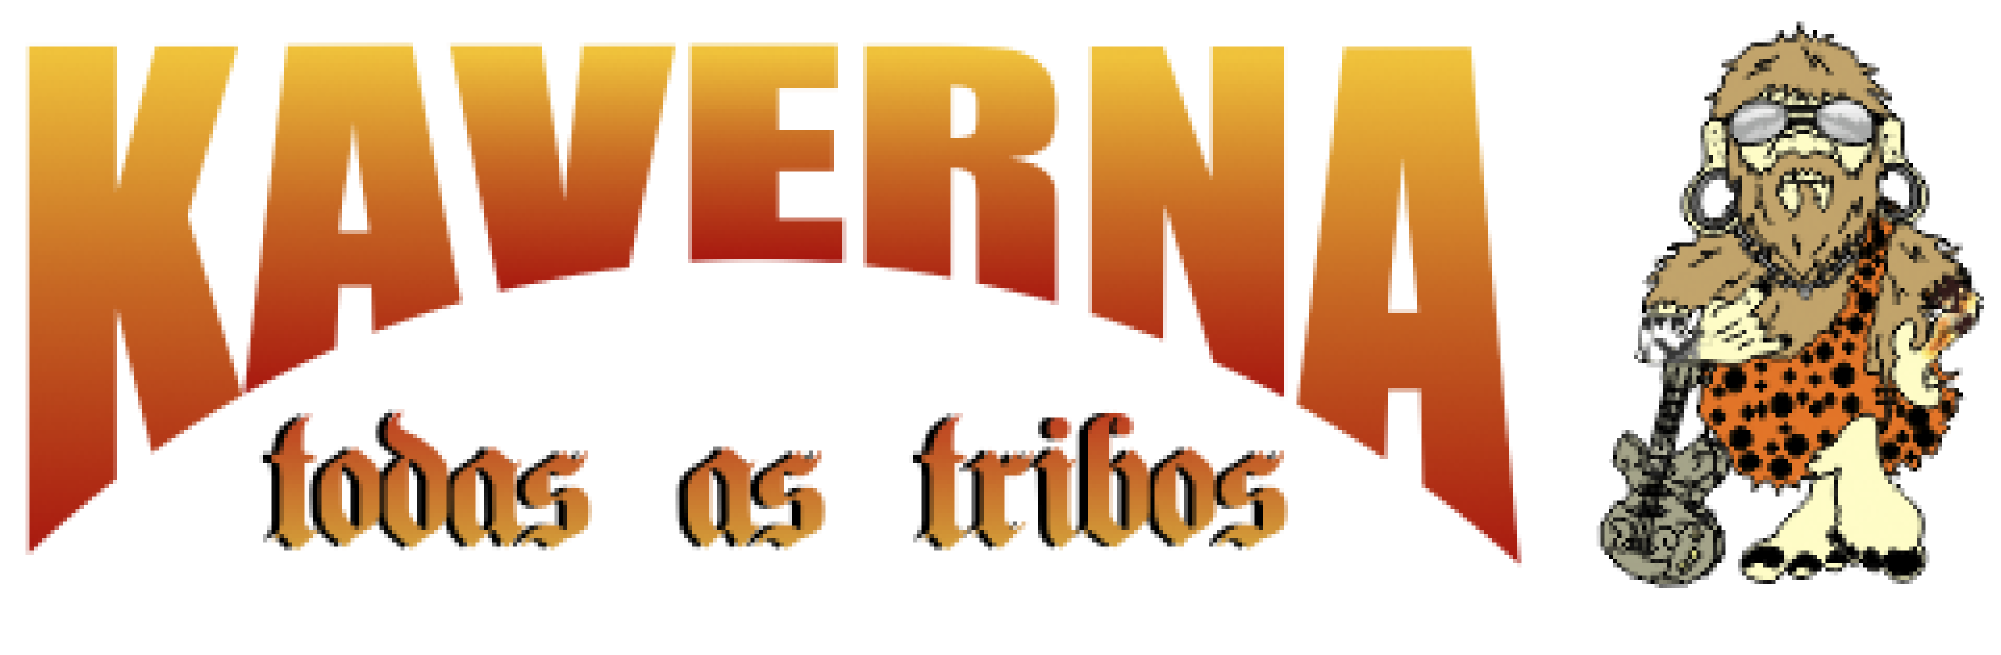 Kaverna Todas as Tribos